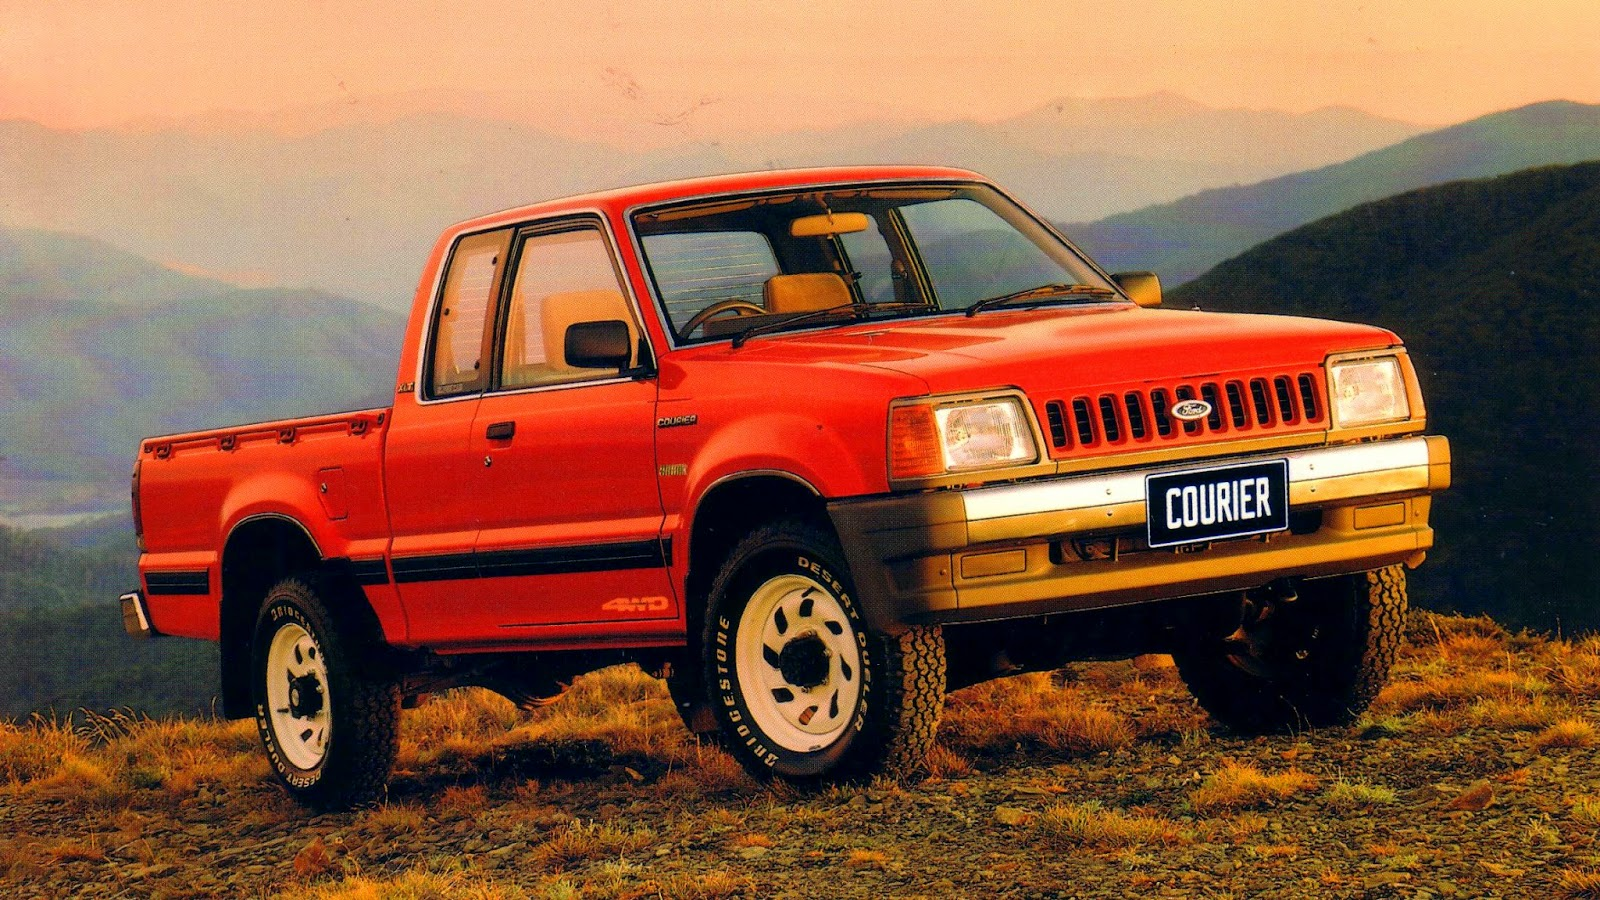 1989 Ford Courier #9